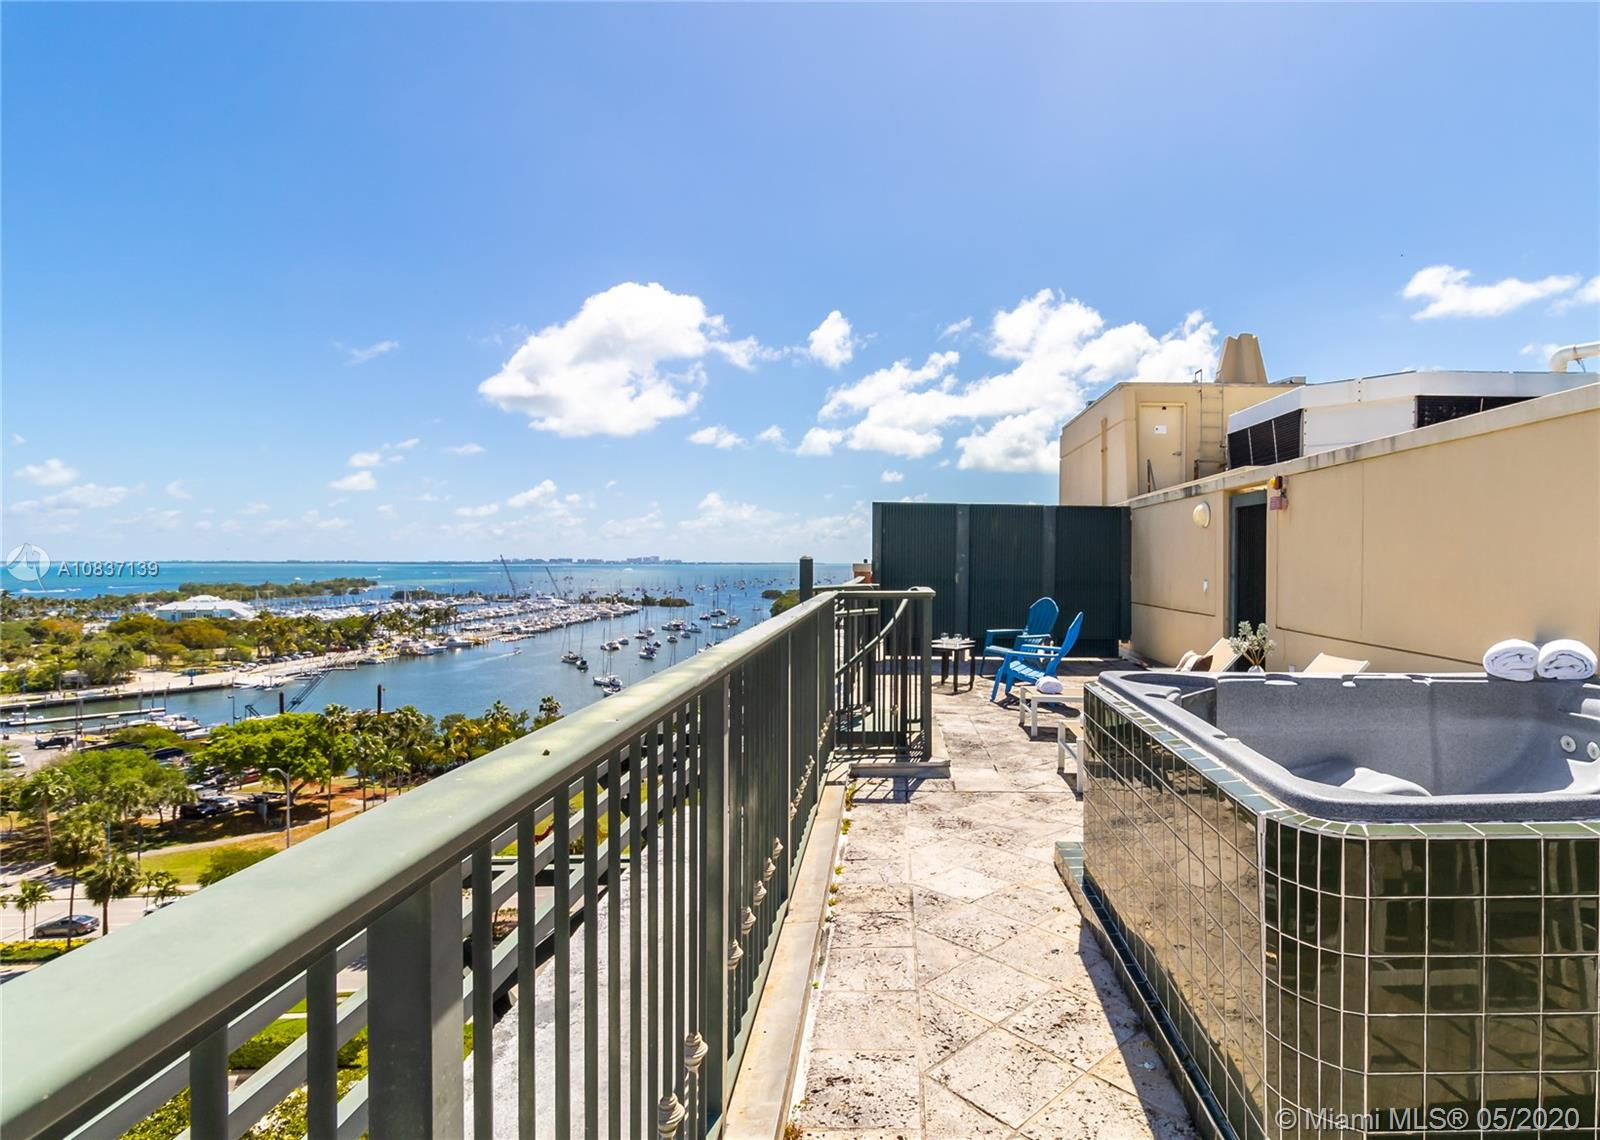 Amazing location in the heart of Coconut Grove, facing the Bay and the Marina, a block from CocoWalk shopping, movies, and restaurants. This fully furnished 2-bedroom penthouse comes with a private rooftop terrace with great city and ocean views. The building offers a bar, heated pool, gym, sauna, and all the service\ of a luxury hotel. The unit can be rented for short term rental. No minimum rental restriction or application process, perfect for a vacation home or as an investment property. Video Tour Included